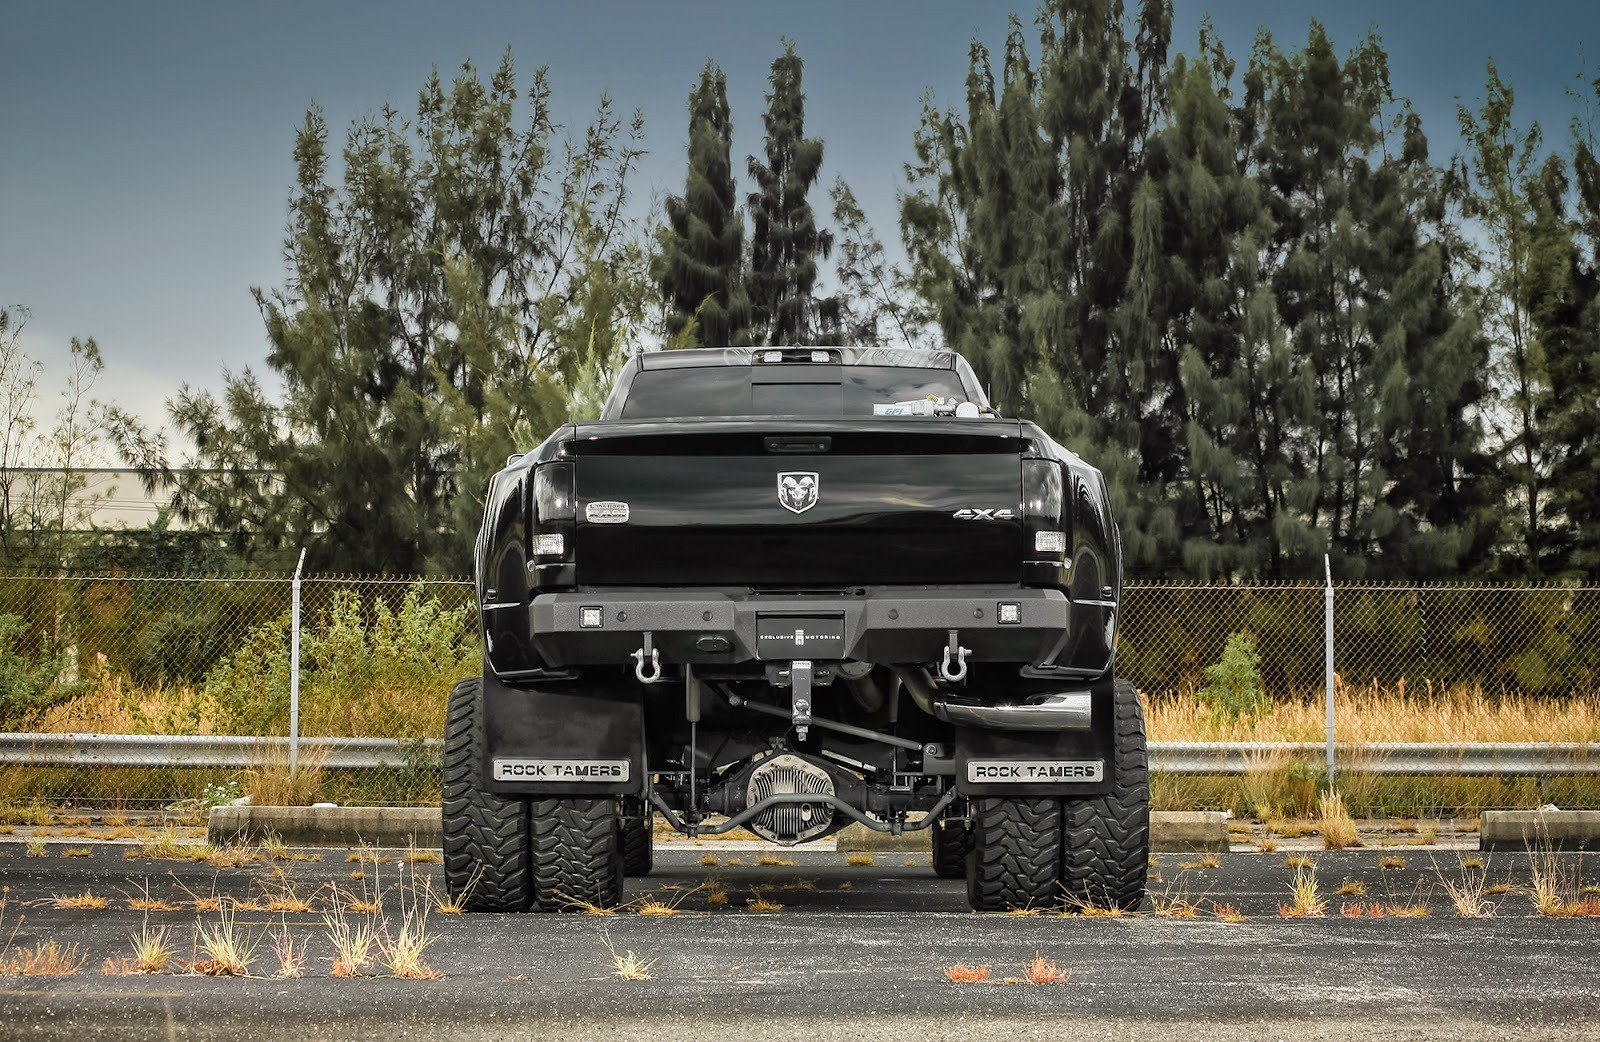 Lifted Mega Cab Dually >> Ford F350 super Duty truck pickup cars black tuning wallpaper   1600x1042   577693   WallpaperUP